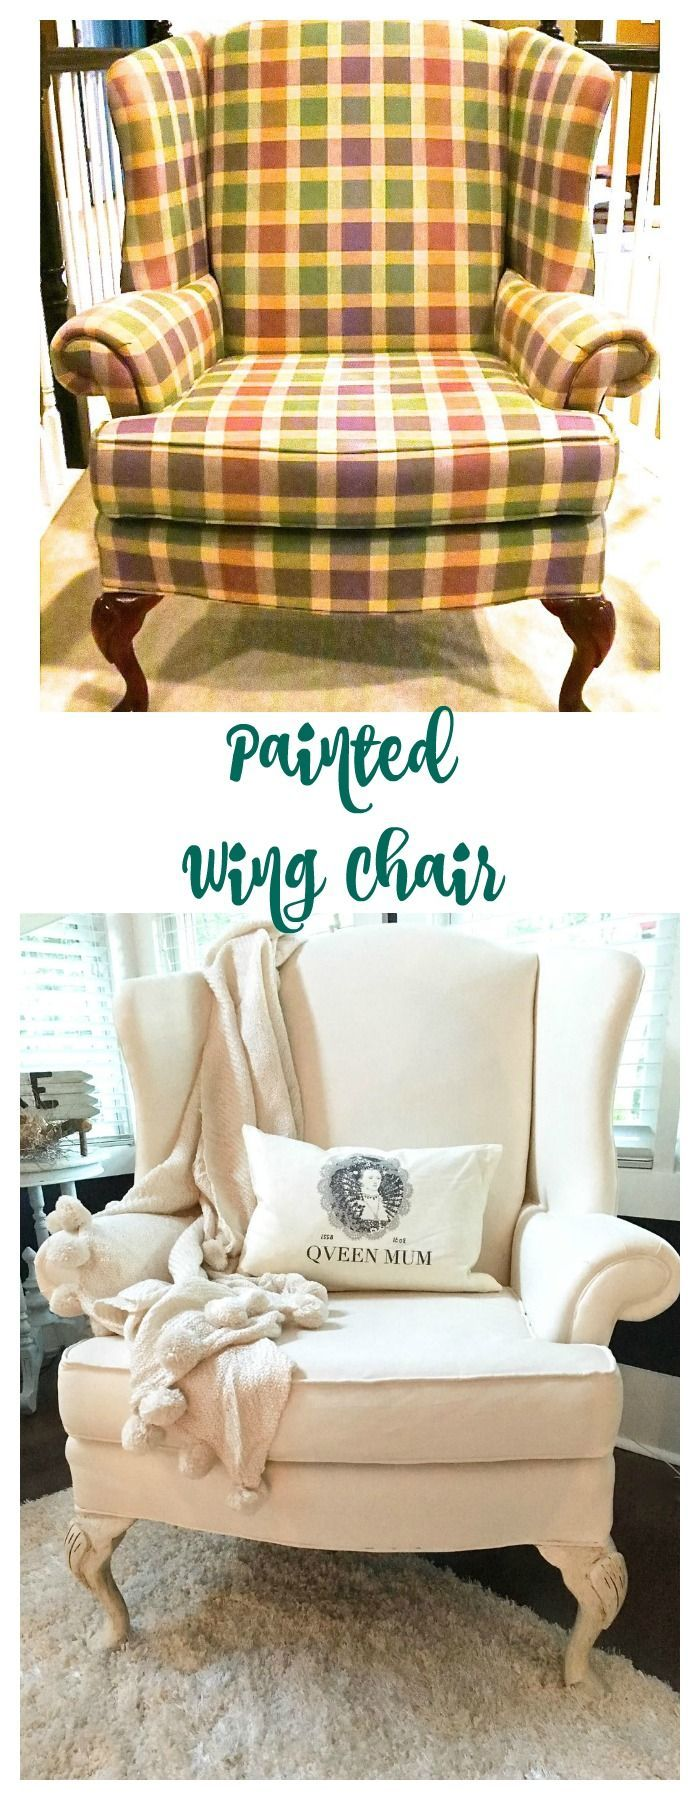 Painted Wing Chair...it Worked